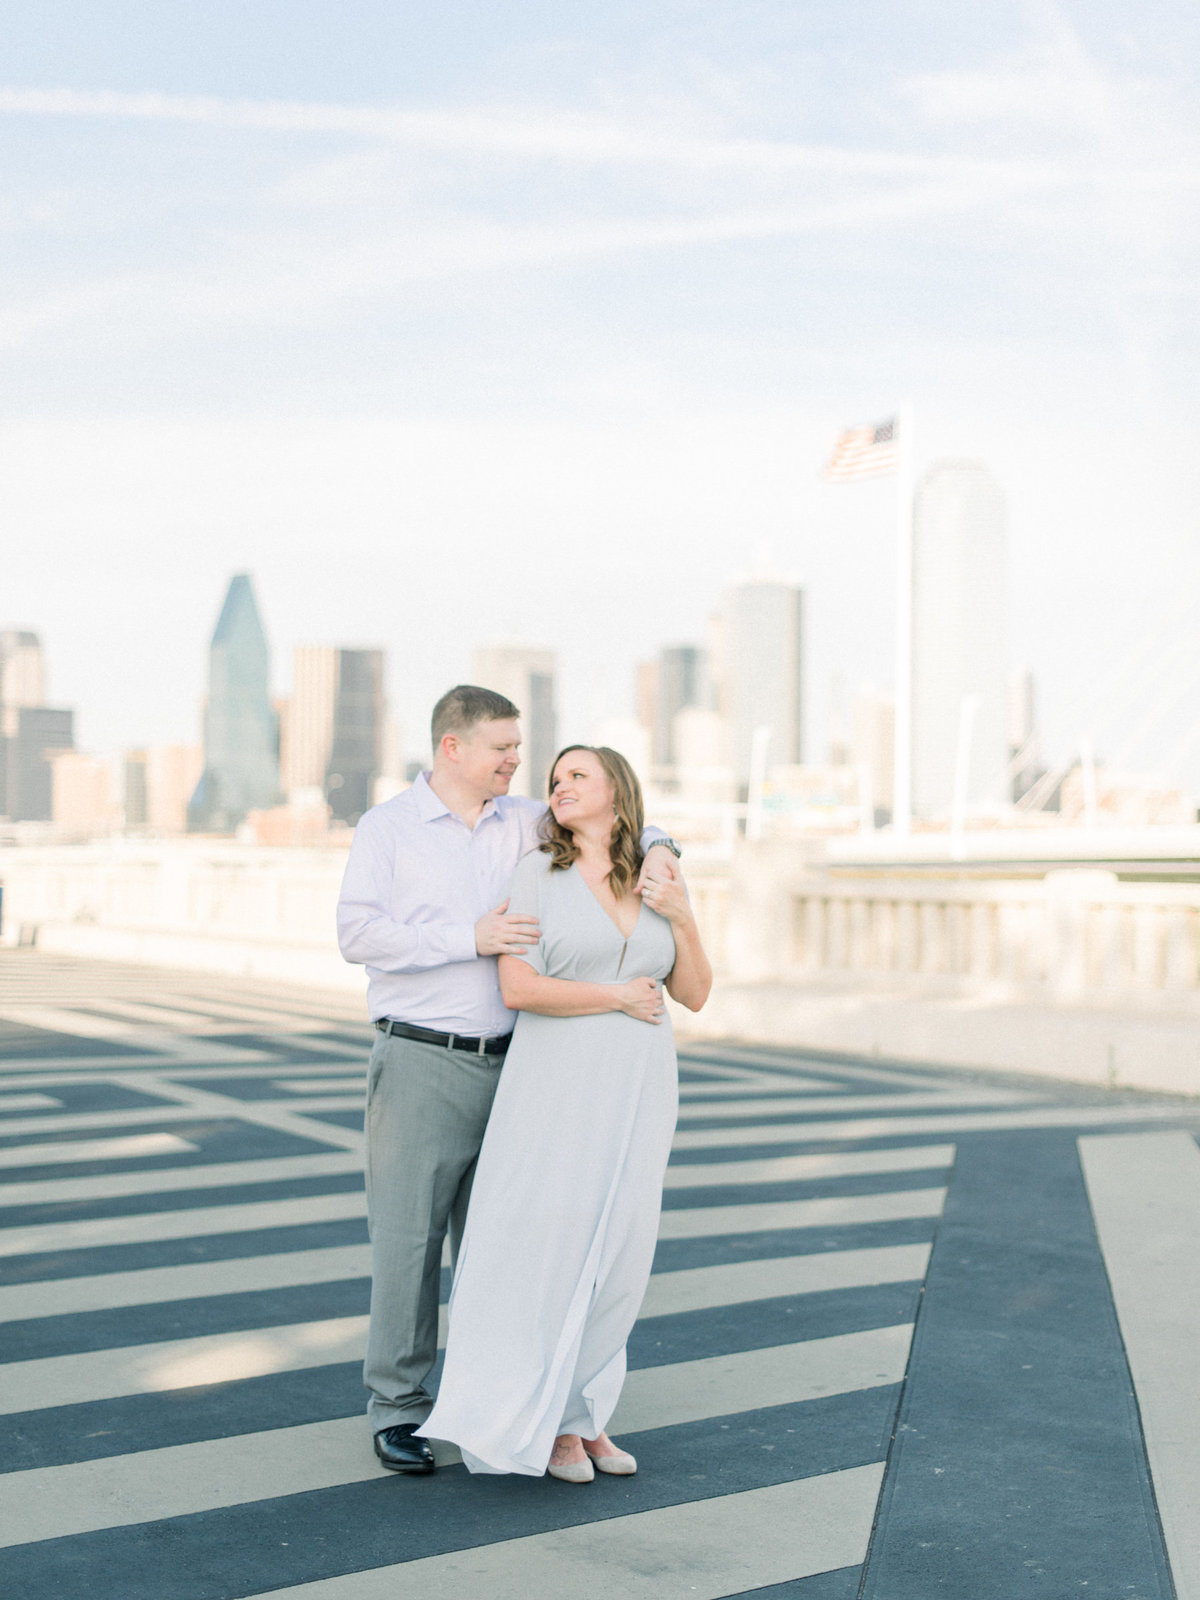 Courtney Hanson Photography - Downtown Dallas Engagement Session-7282